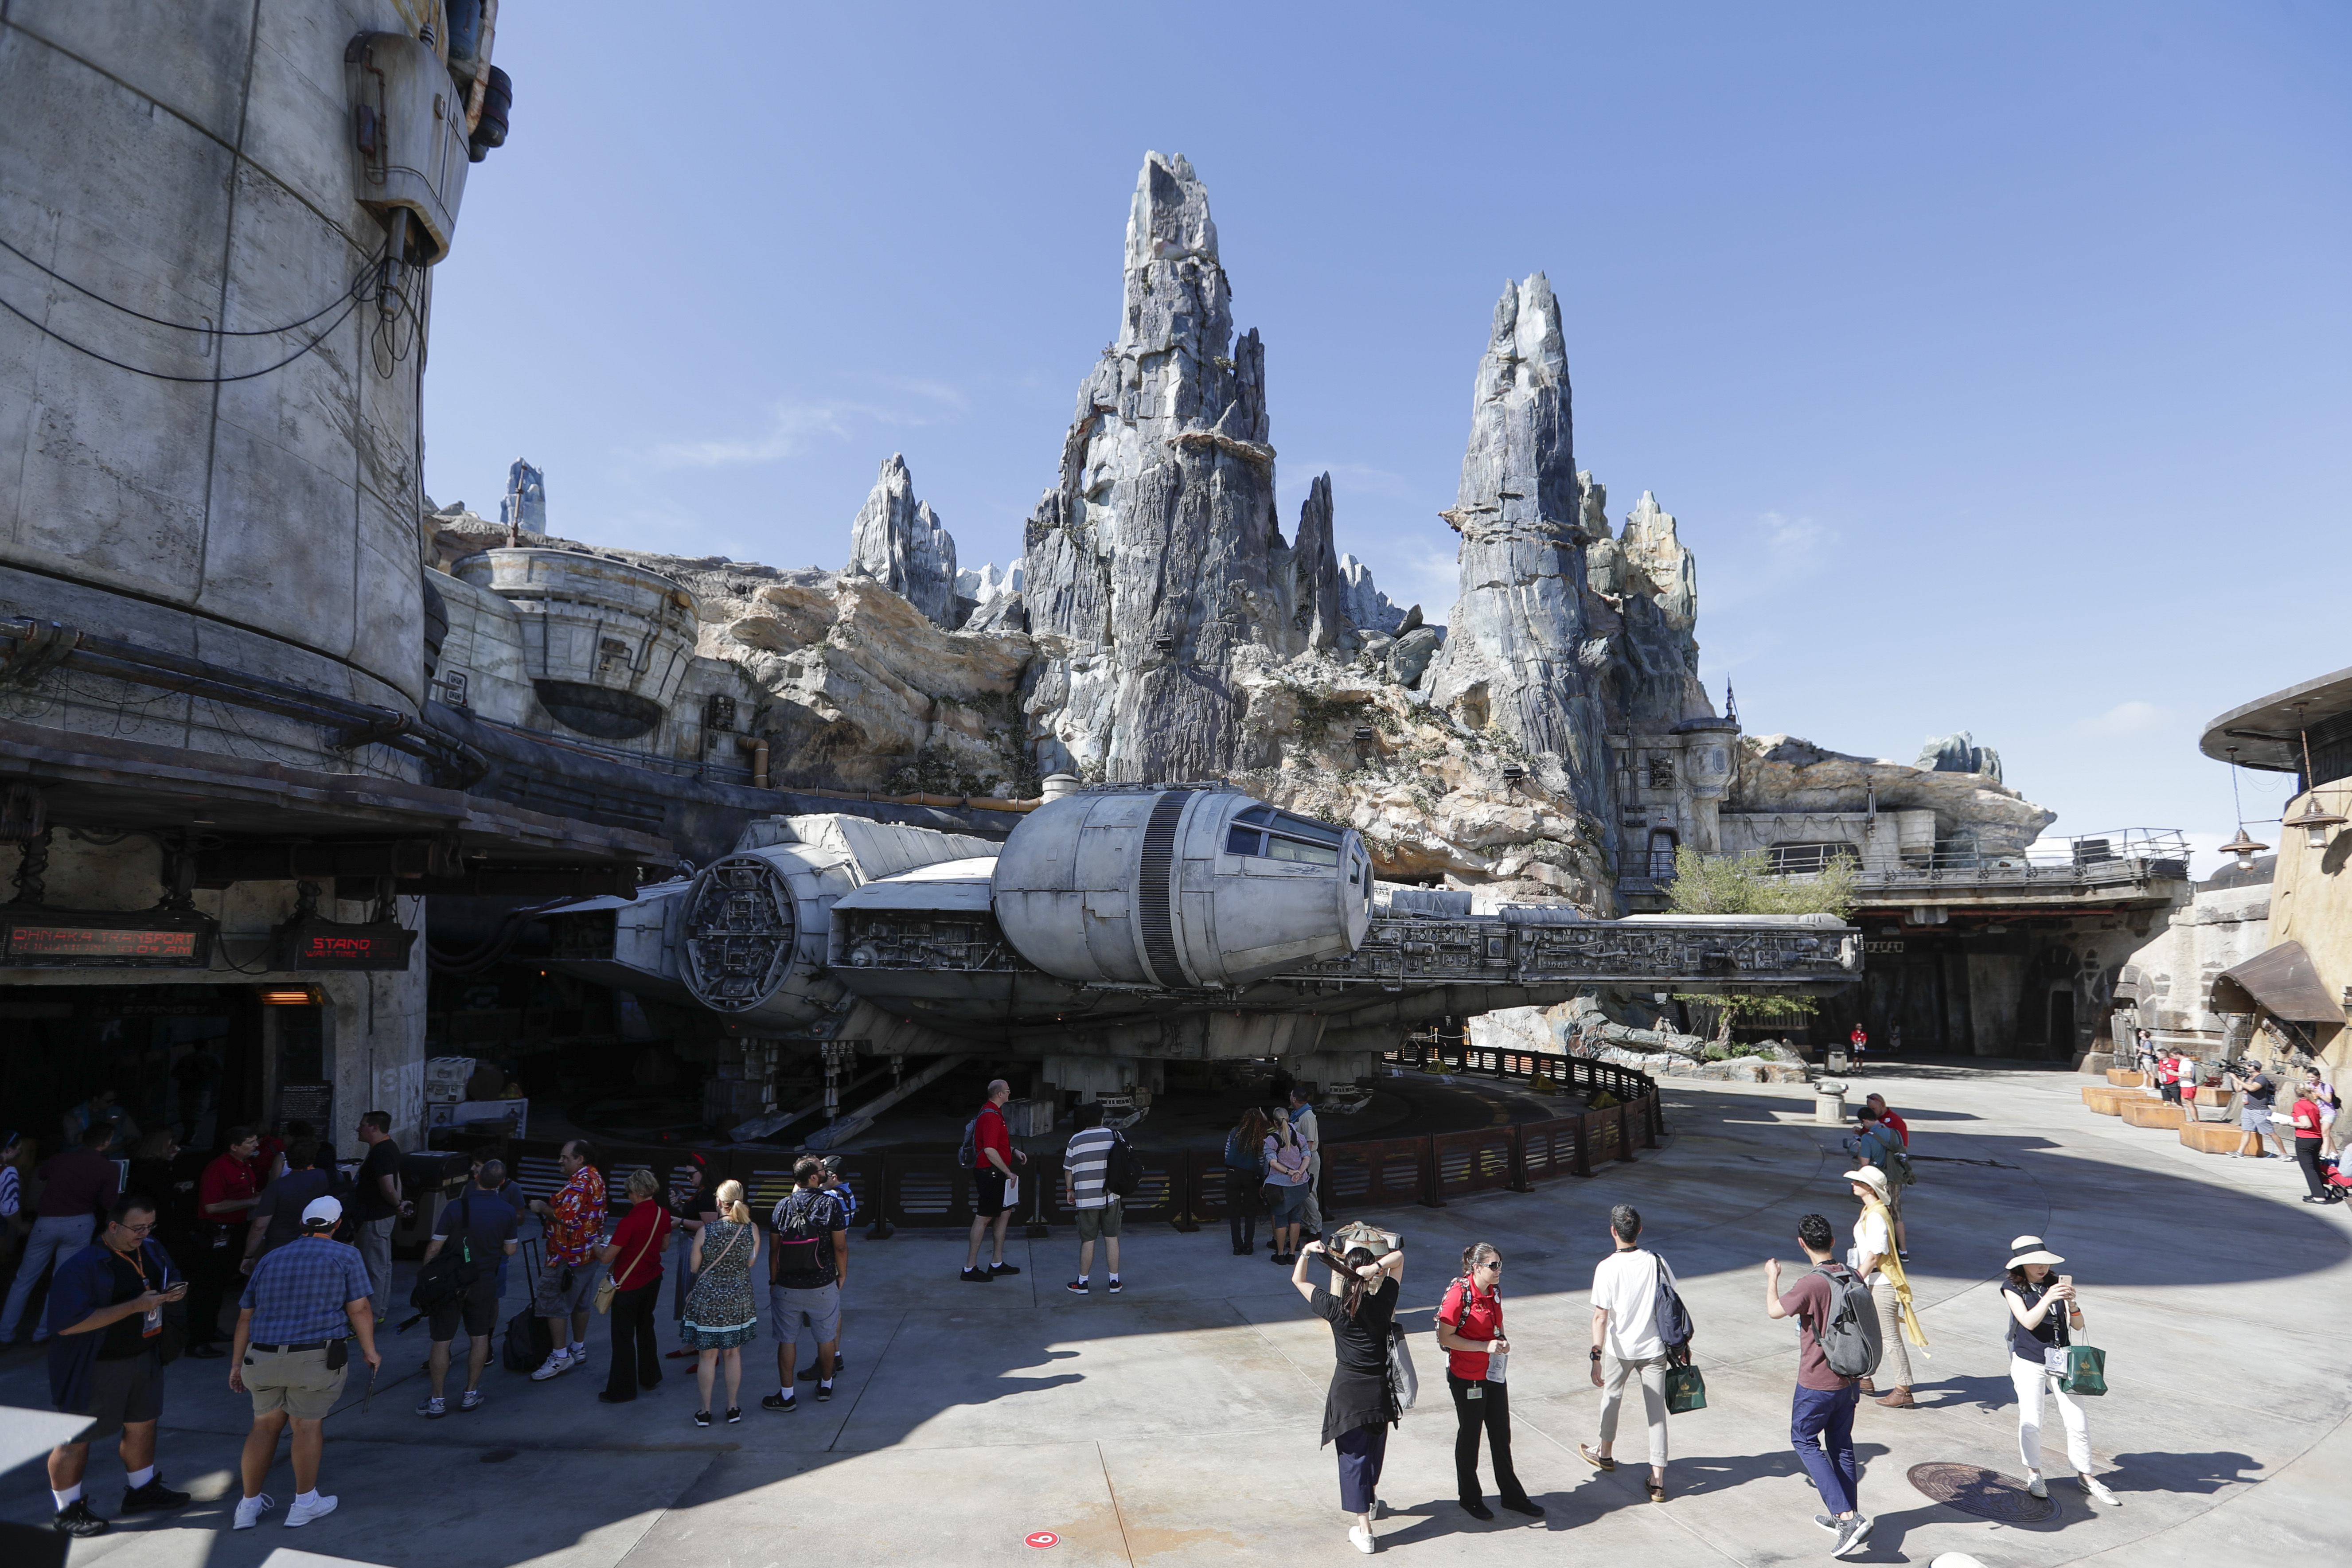 Park visitors walk near the entrance to the Millennium Falcon Smugglers Run ride during a preview of the Star Wars themed land, Galaxy's Edge in Hollywood Studios at Disney World.